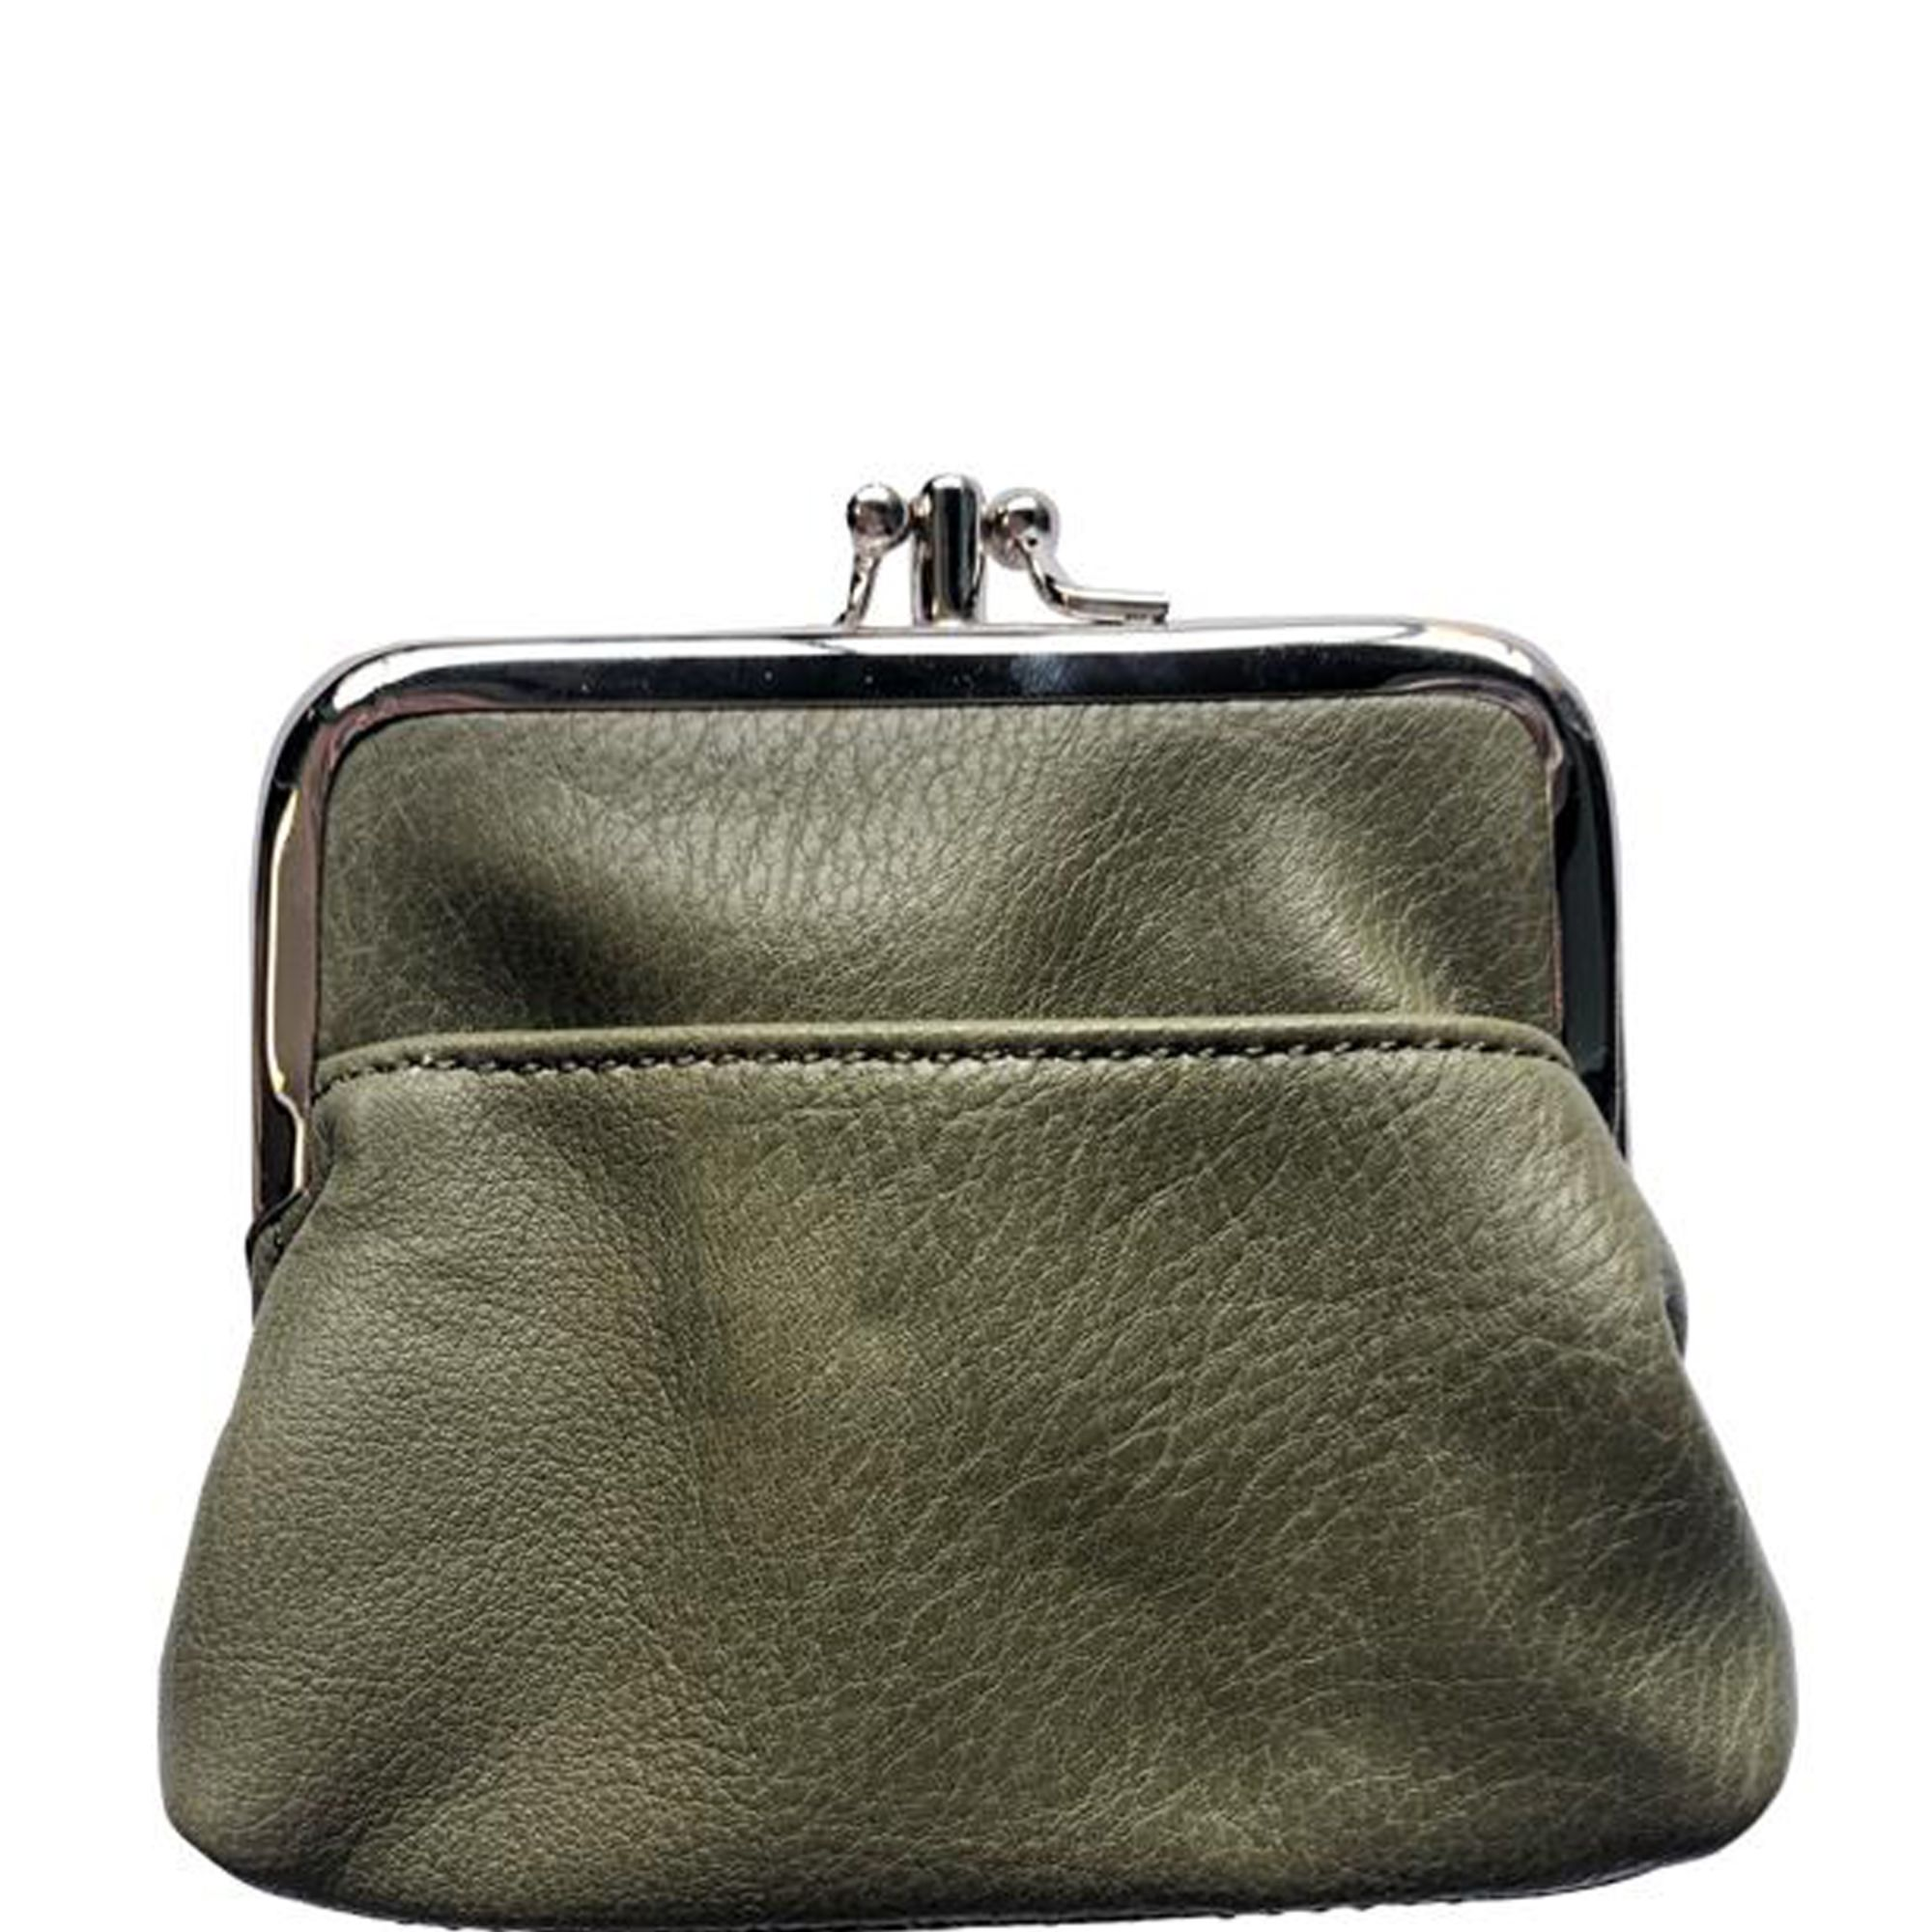 leather pouch green leather purset Army Military green Soft leather Textured wallet case leather women wallet Small leather bag